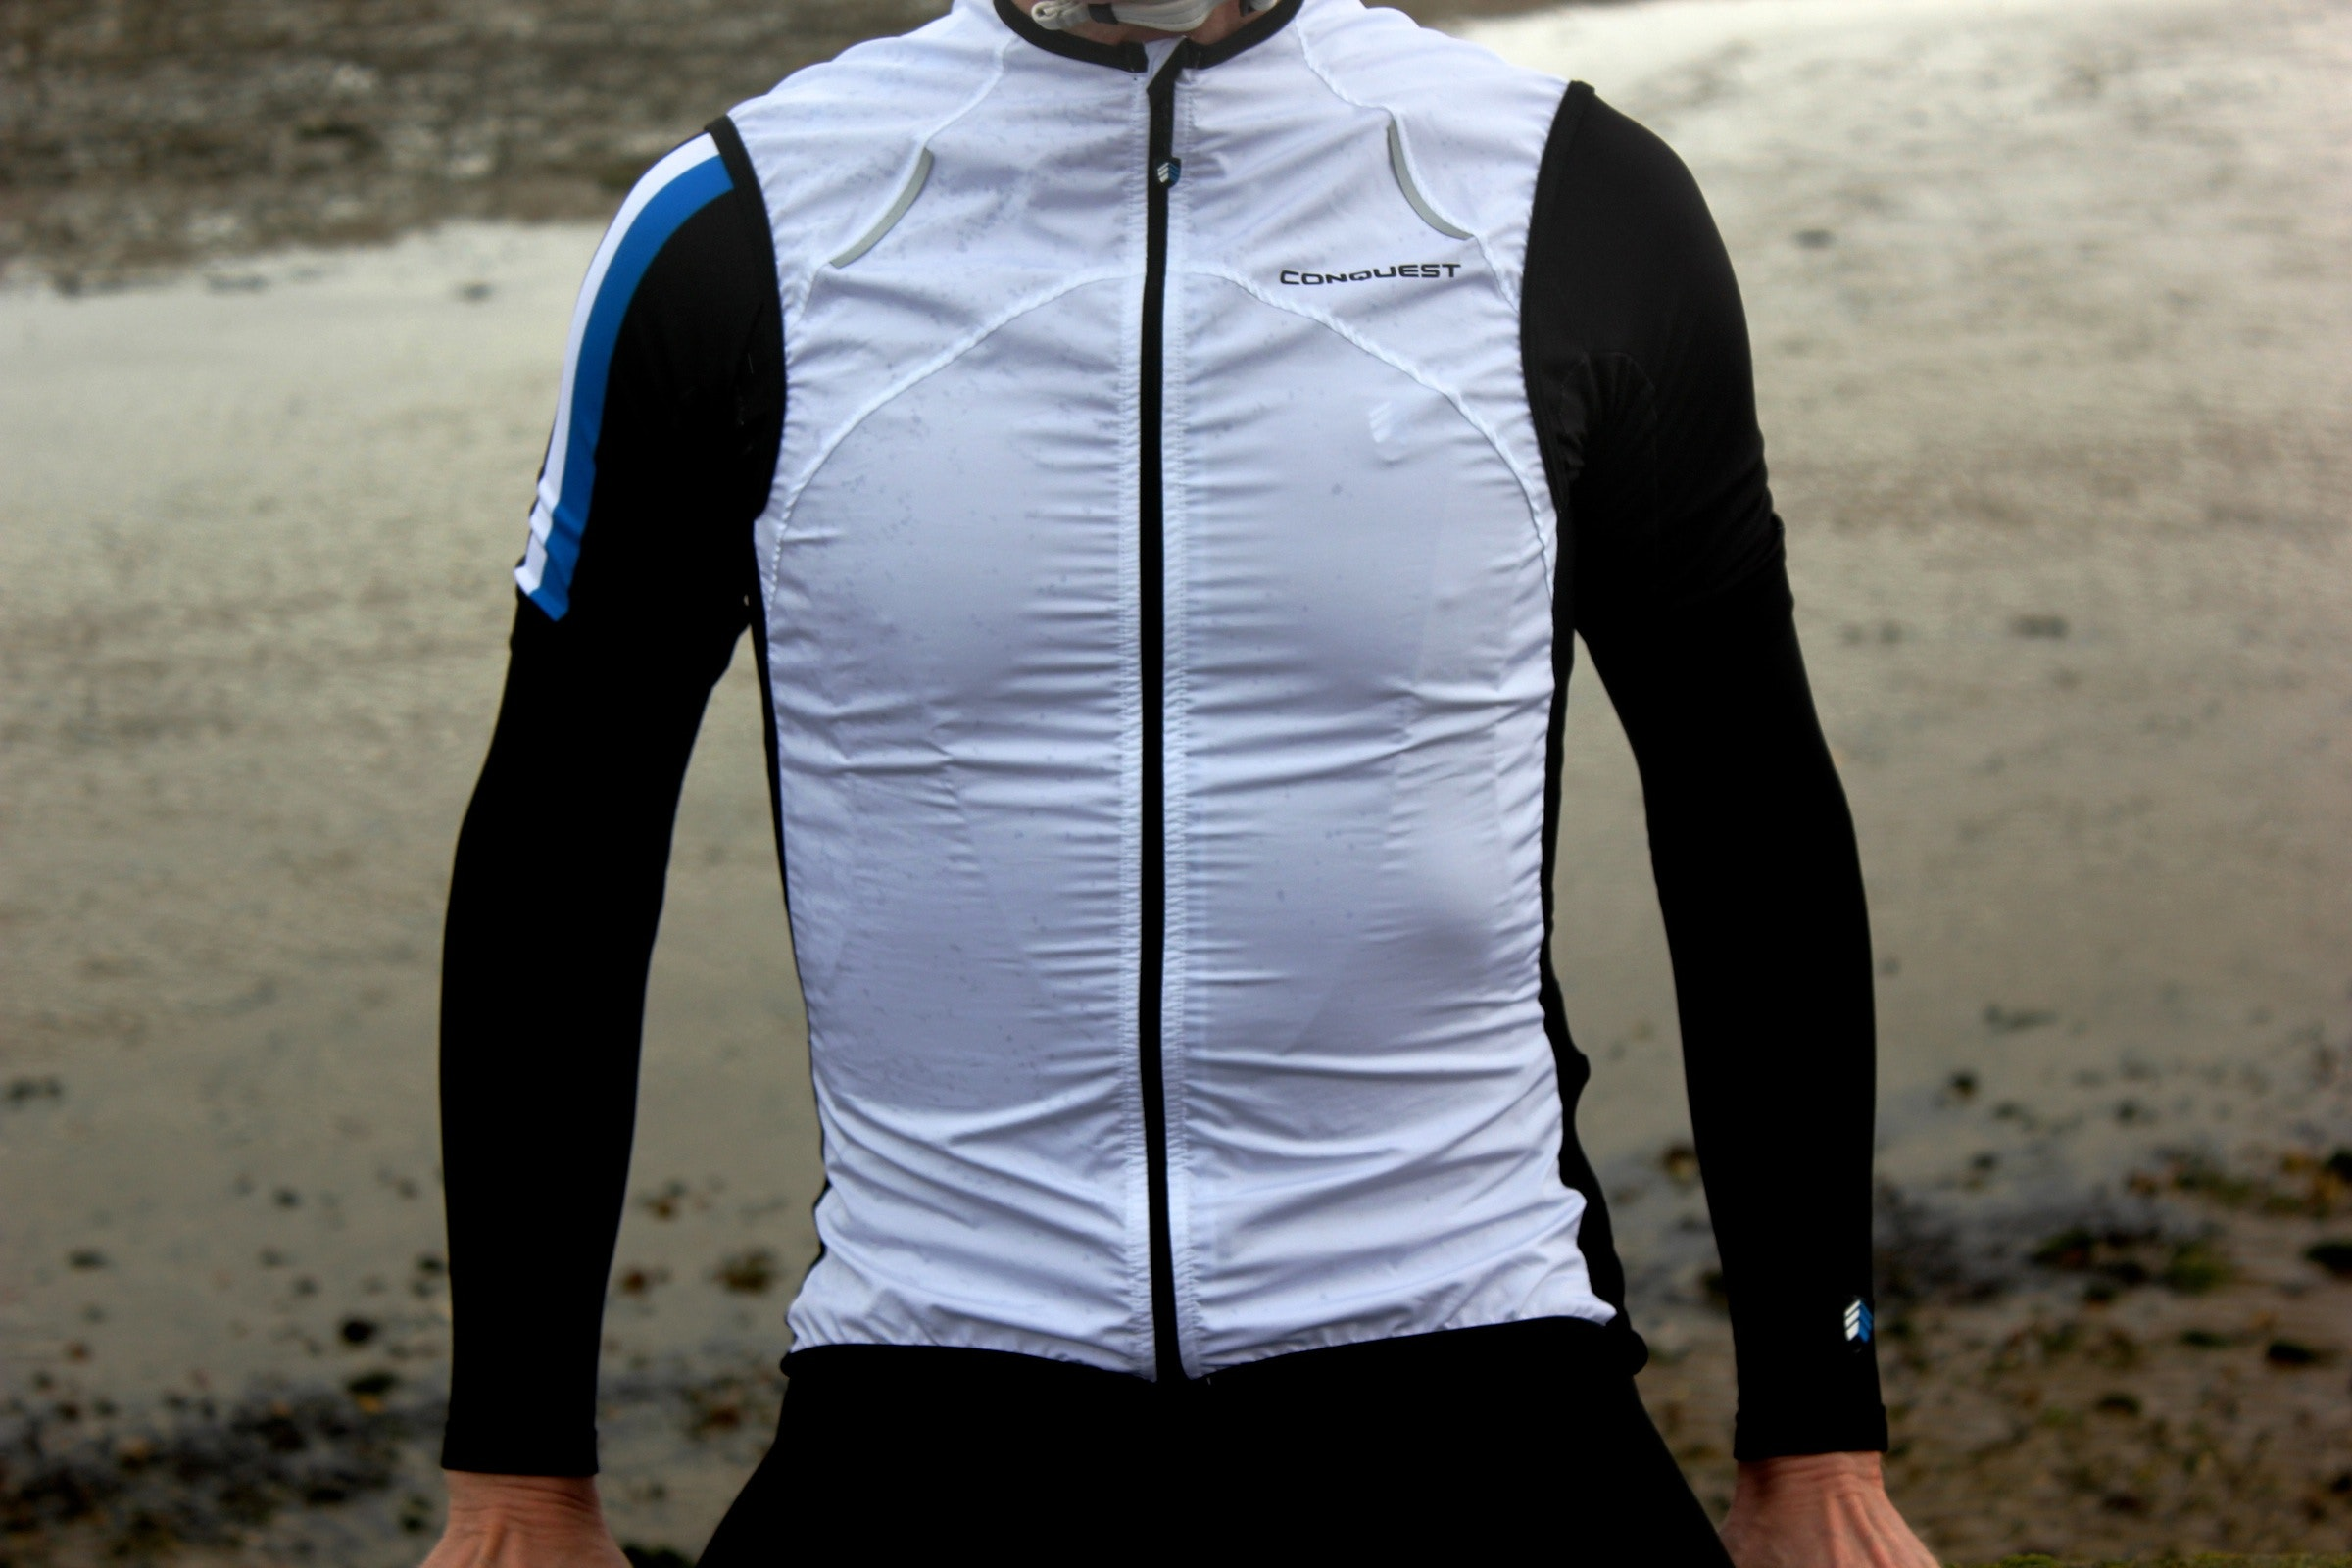 Conquest clothing, water resistant gilet, pic: Peter Lovell, ©Factory Media